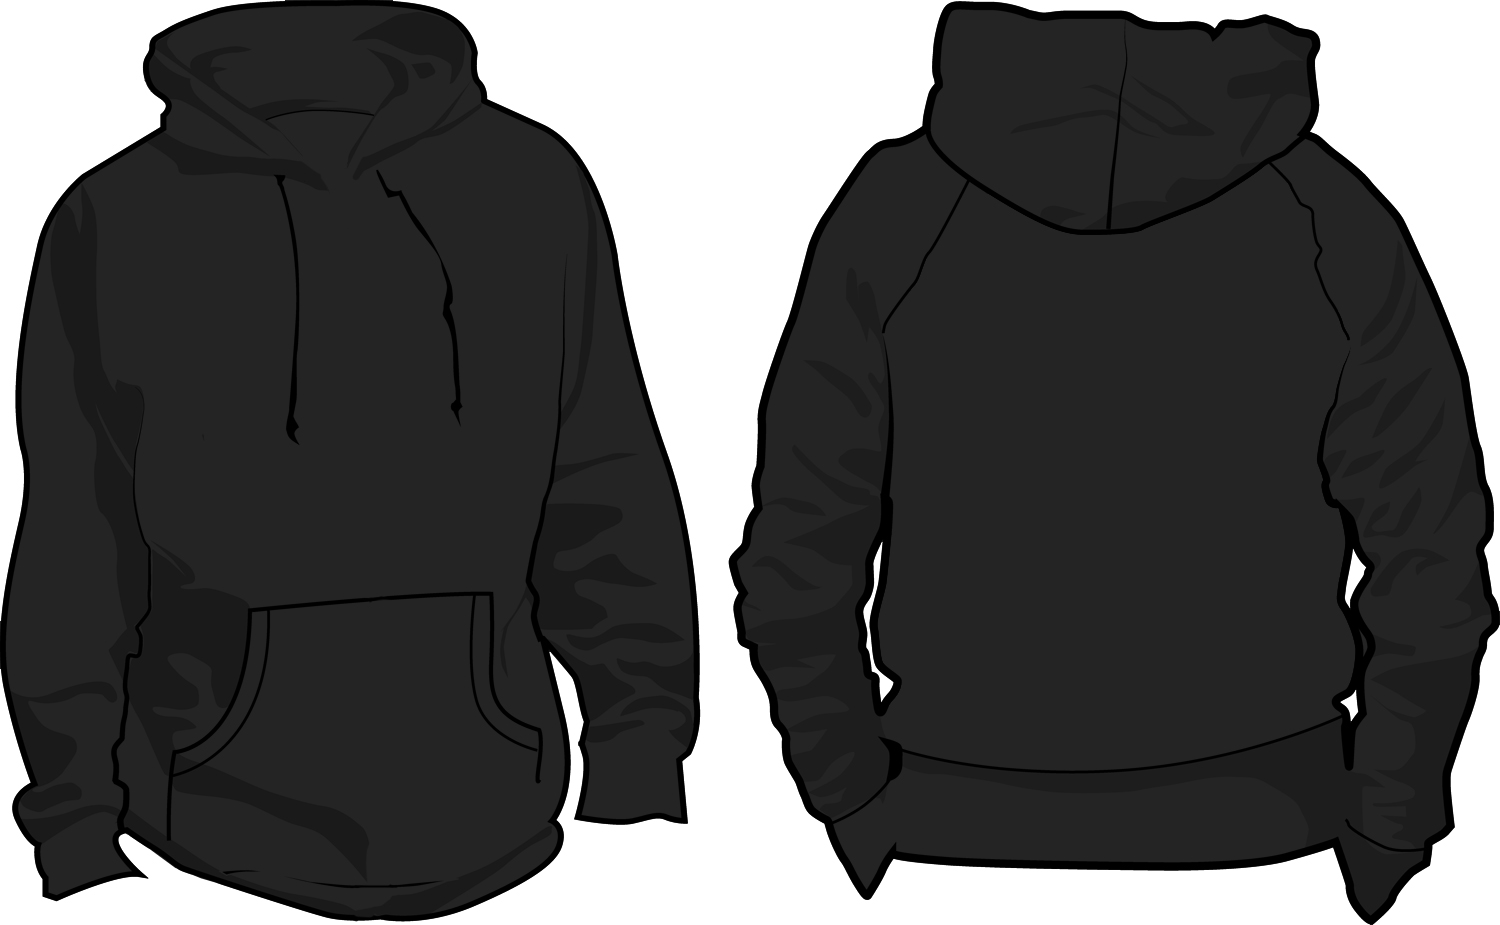 10 Pullover Hoodie Template Images